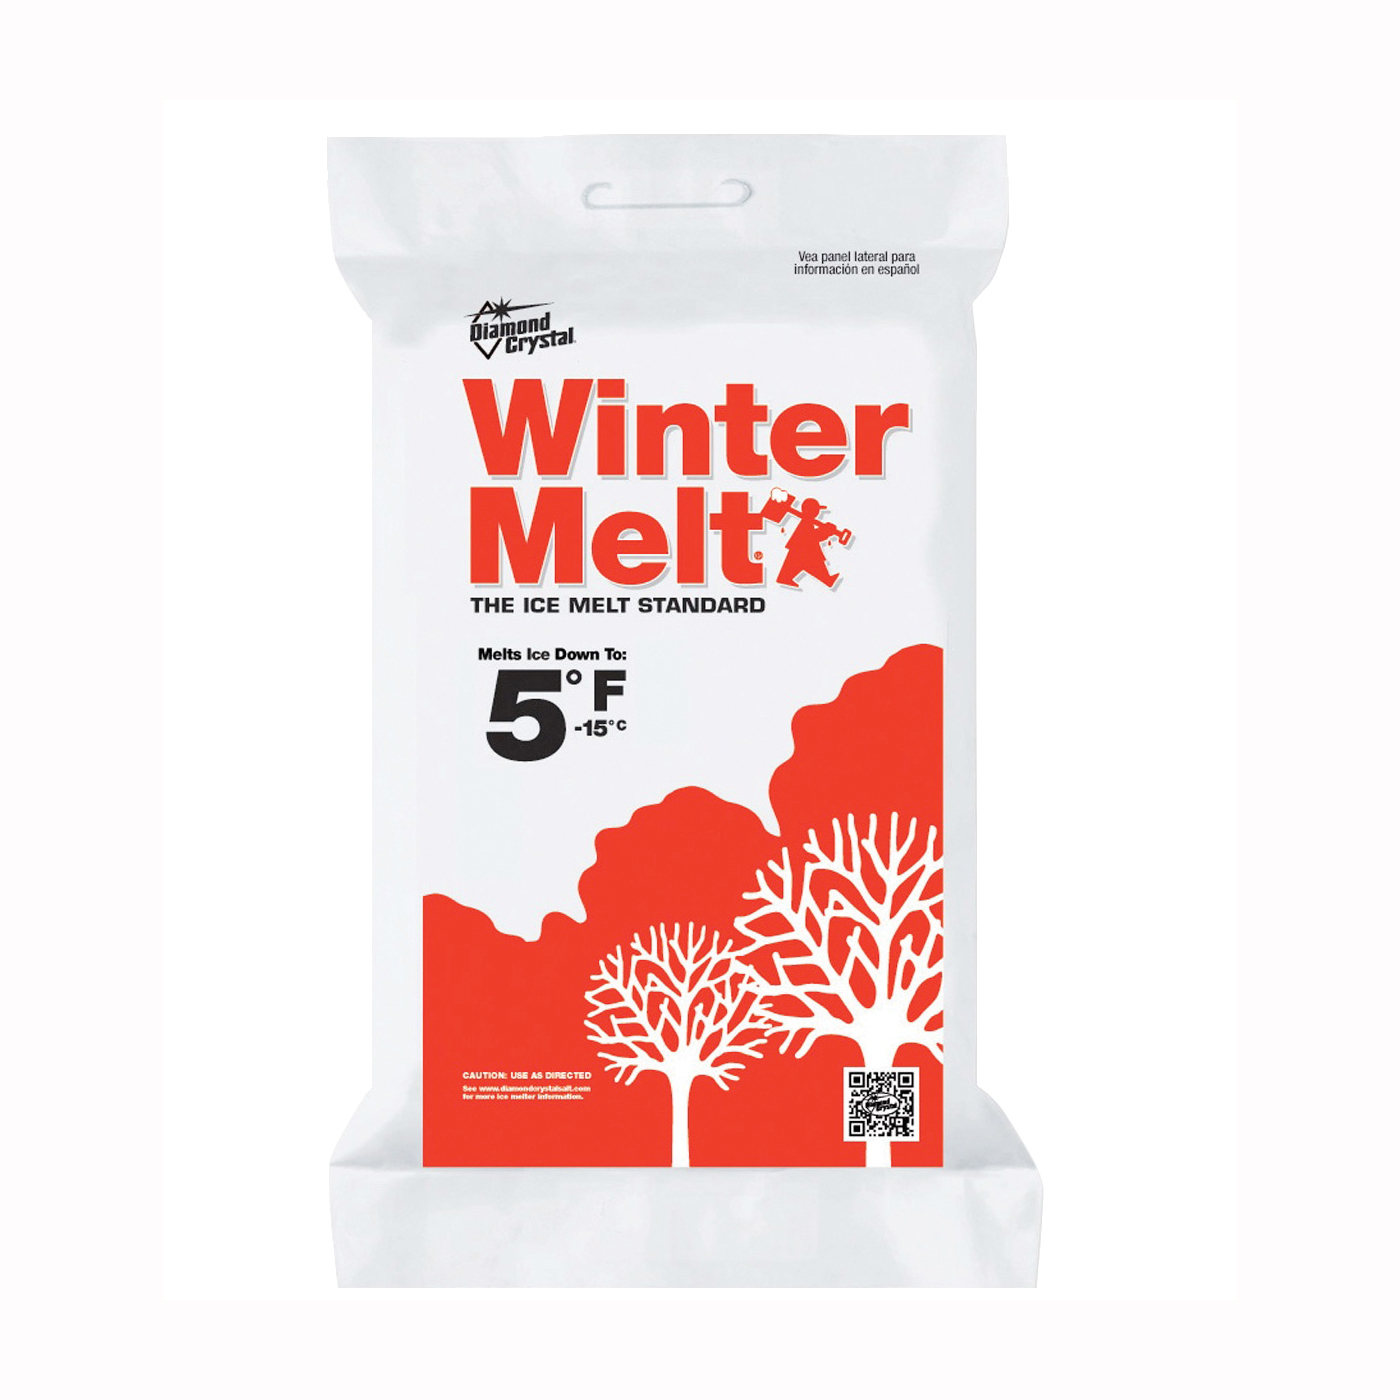 Picture of Cargill Diamond Crystal Winter Melt 100046857 Ice Melter Salt, Crystalline Solid, White, 10 lb Package, Bag